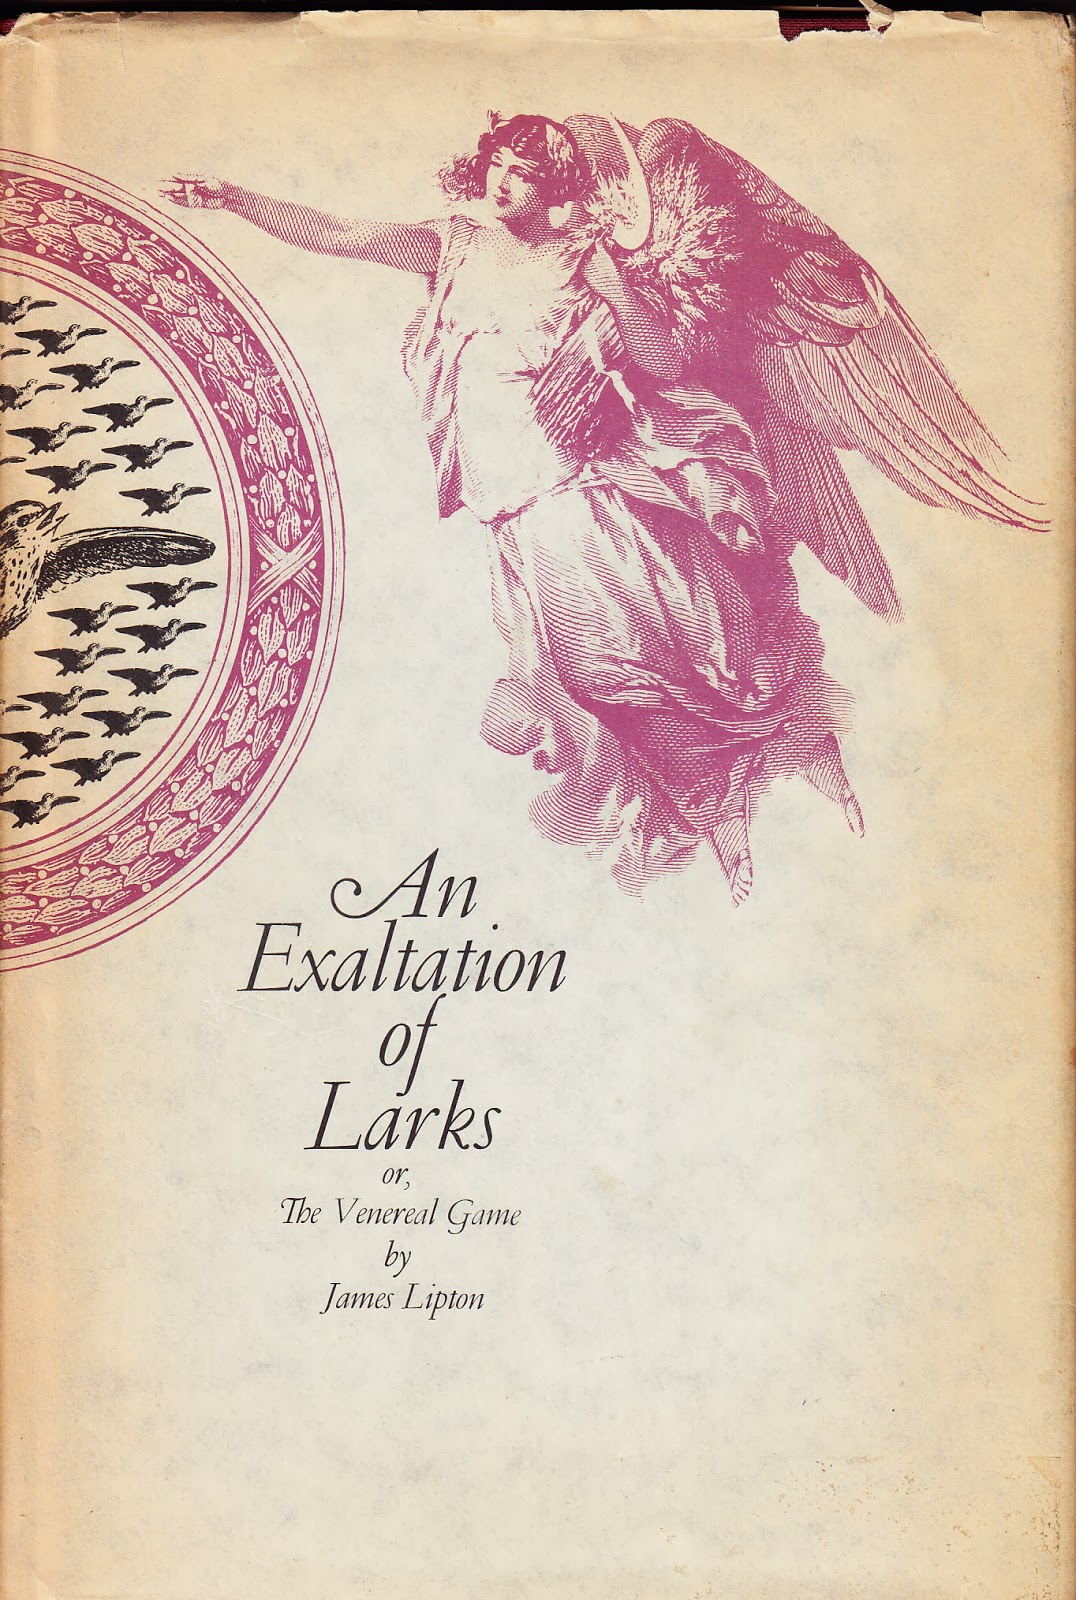 An Exaltation of Larks: The Ultimate Edition, More than 1,000 Terms, Lipton, James